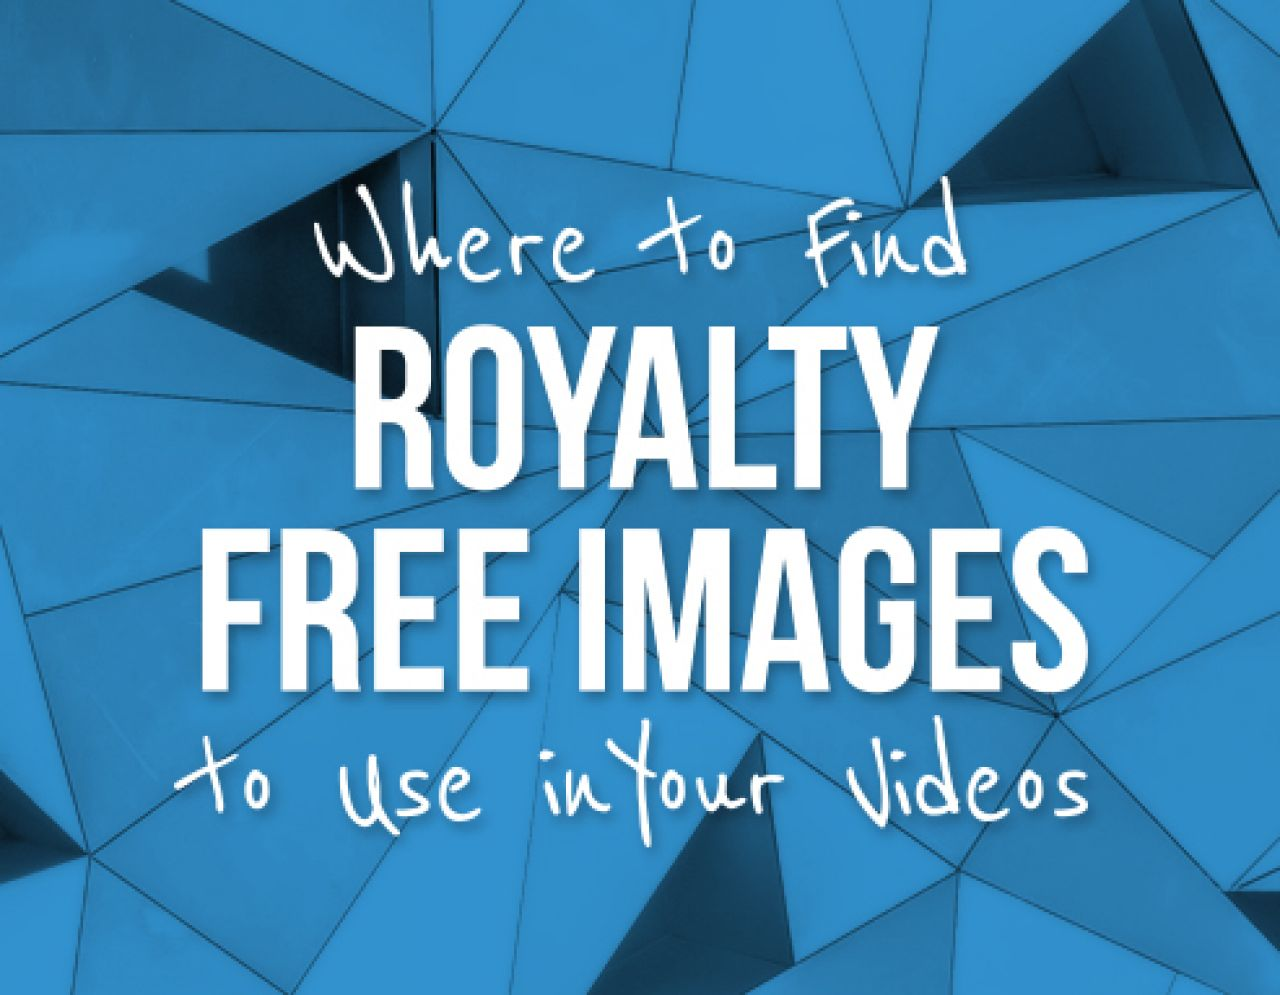 Royalty-Free-Images-Sml-1280x995.55555555556-c-default